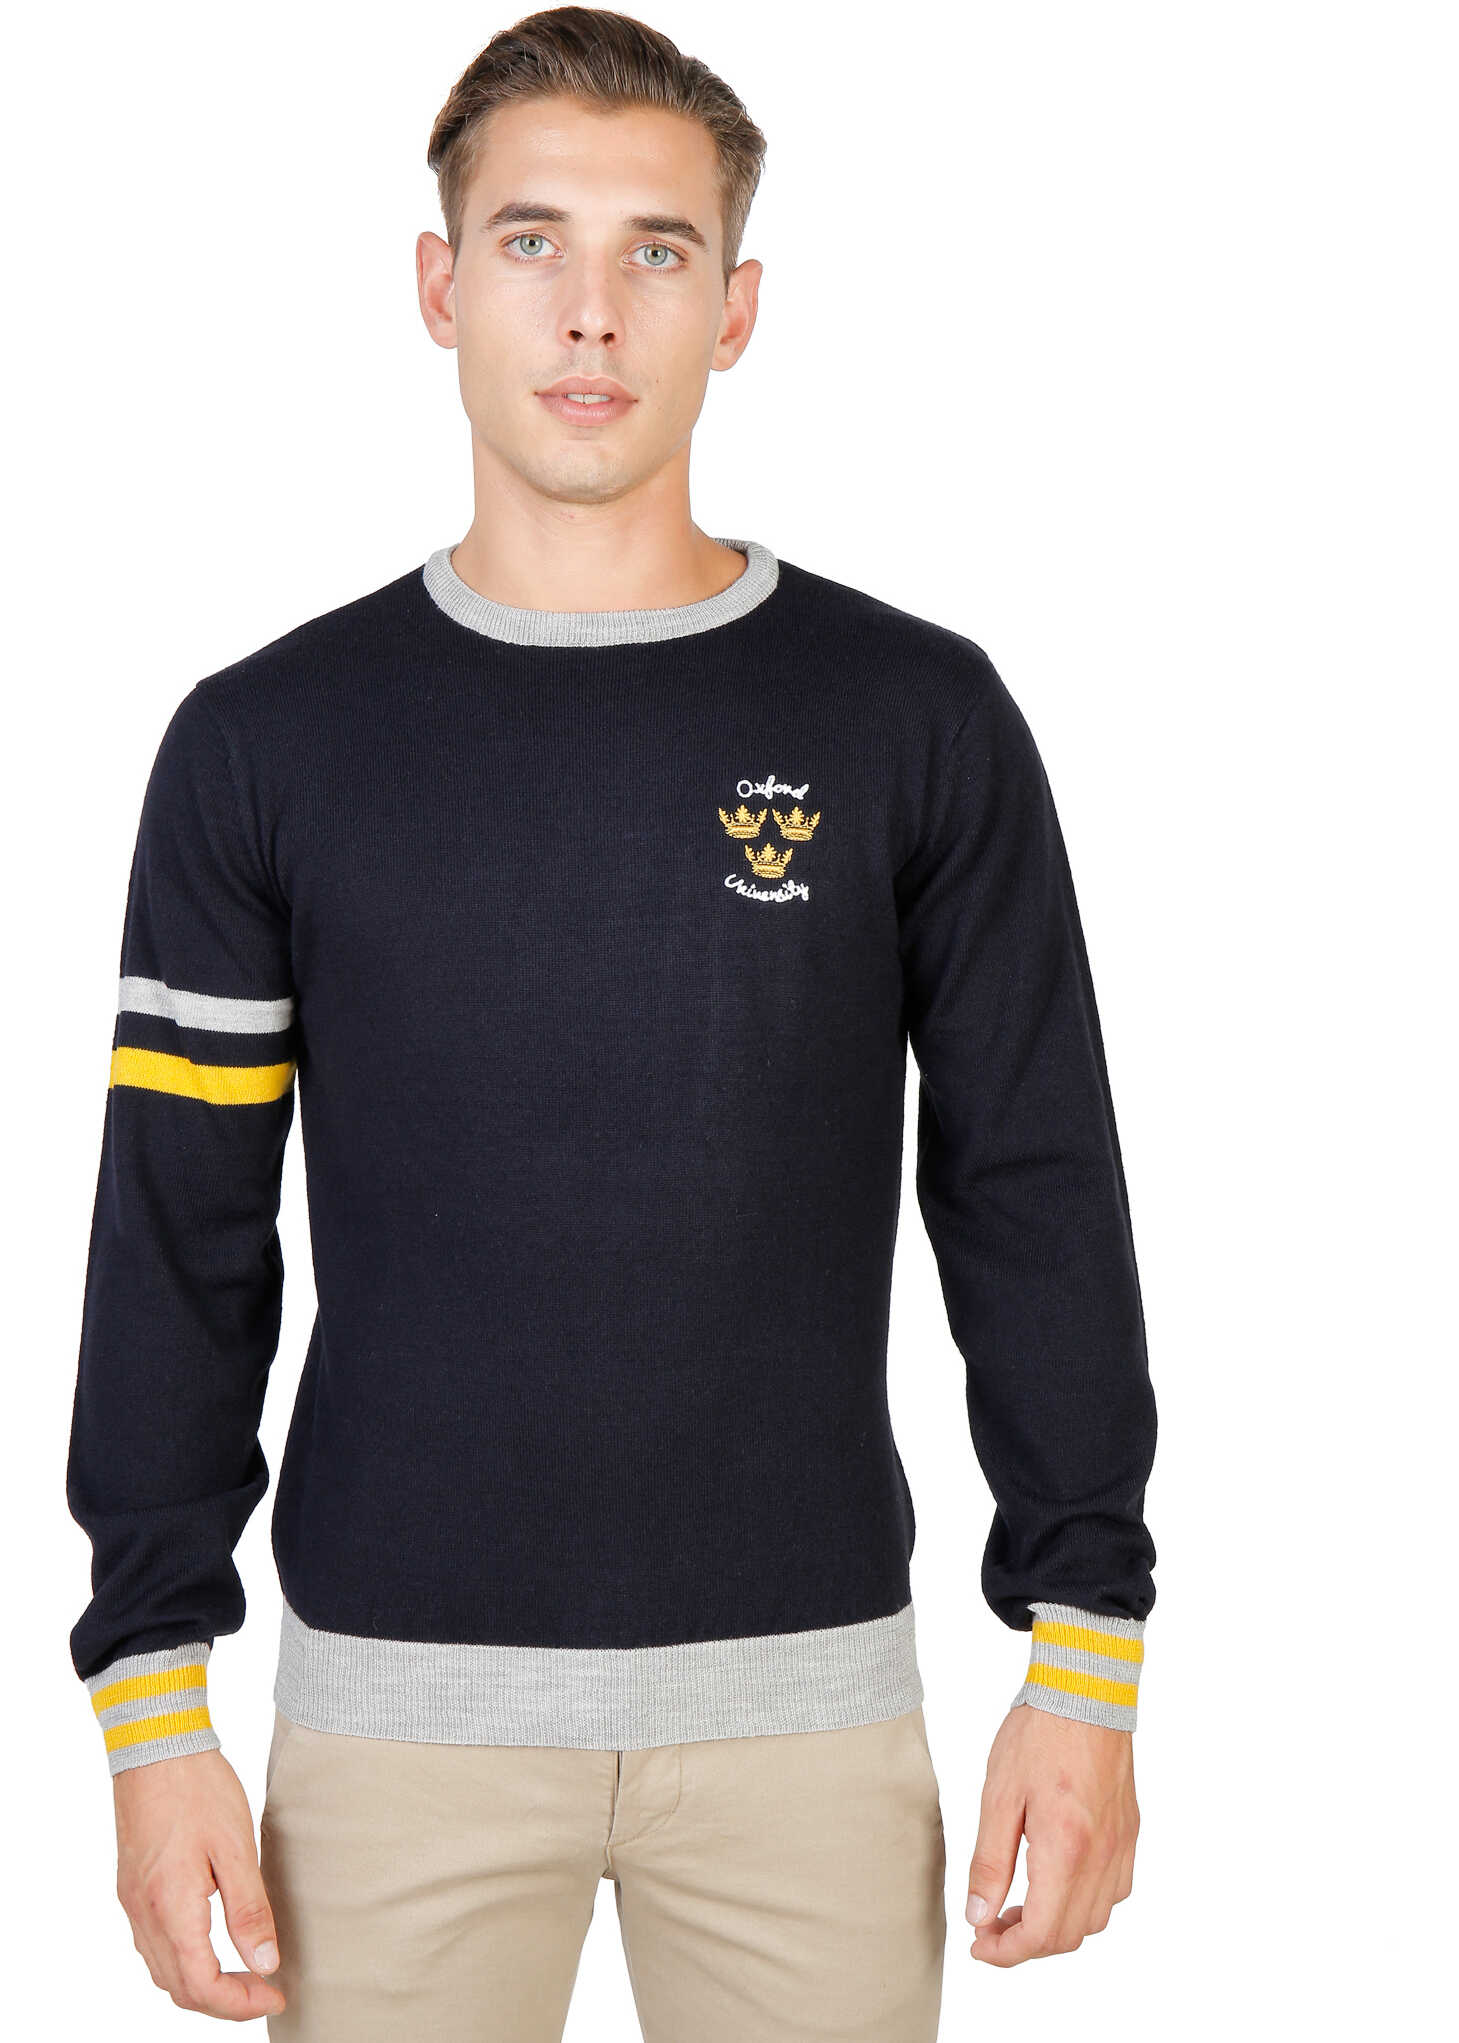 Pulover Barbati Oxford University Oxford_tricot-cr